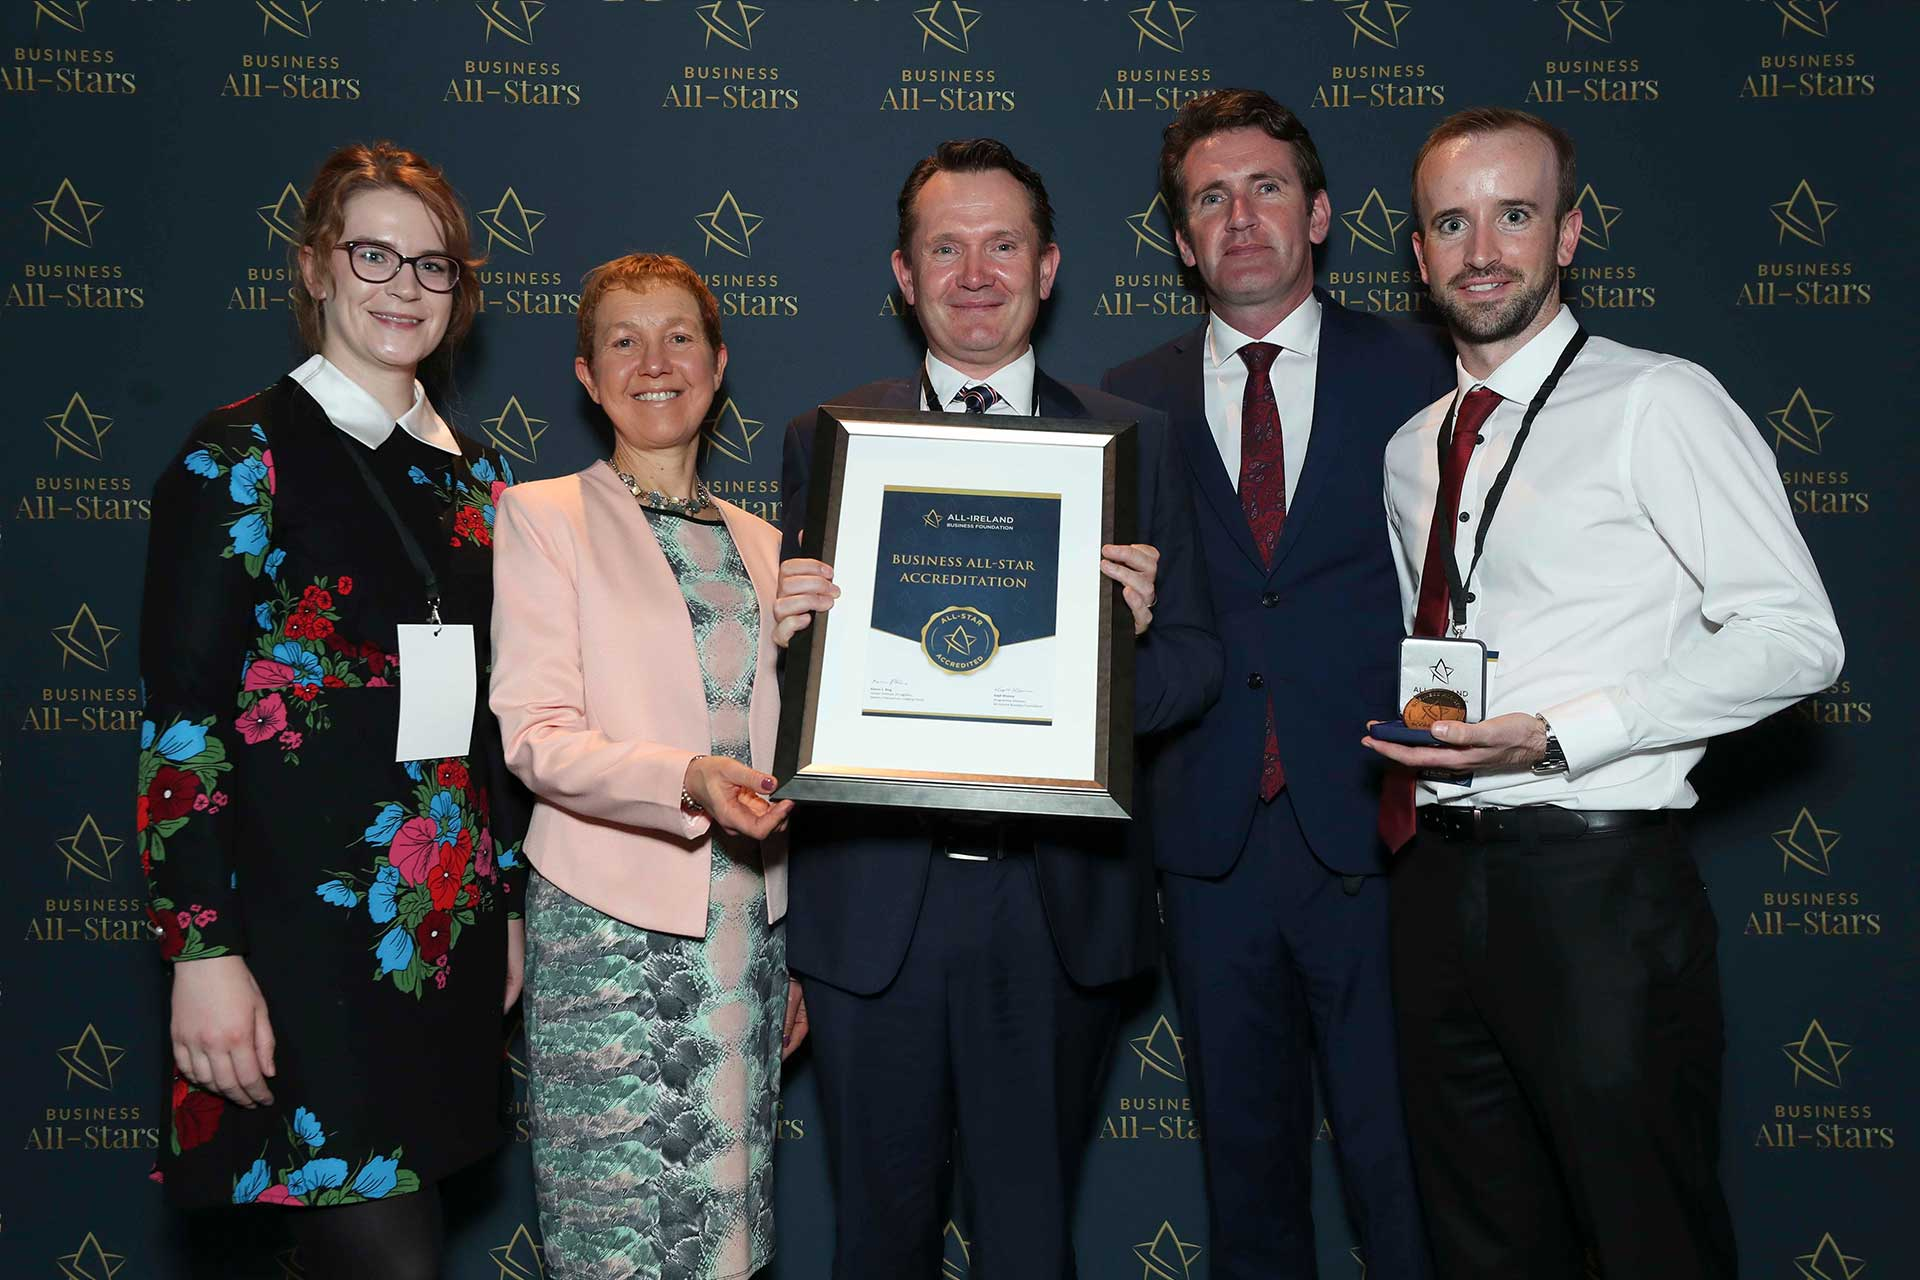 Mike Minihan & team - QPTech Recruitment receiving Business All-Star Accreditation at Croke Park from Dr Briga Hynes, Kemmy Business School, University of Limerick and Senator Aodhán Ó Ríordáin, Spokesperson on Education and Skills, Gaeilge and the Gaeltacht.